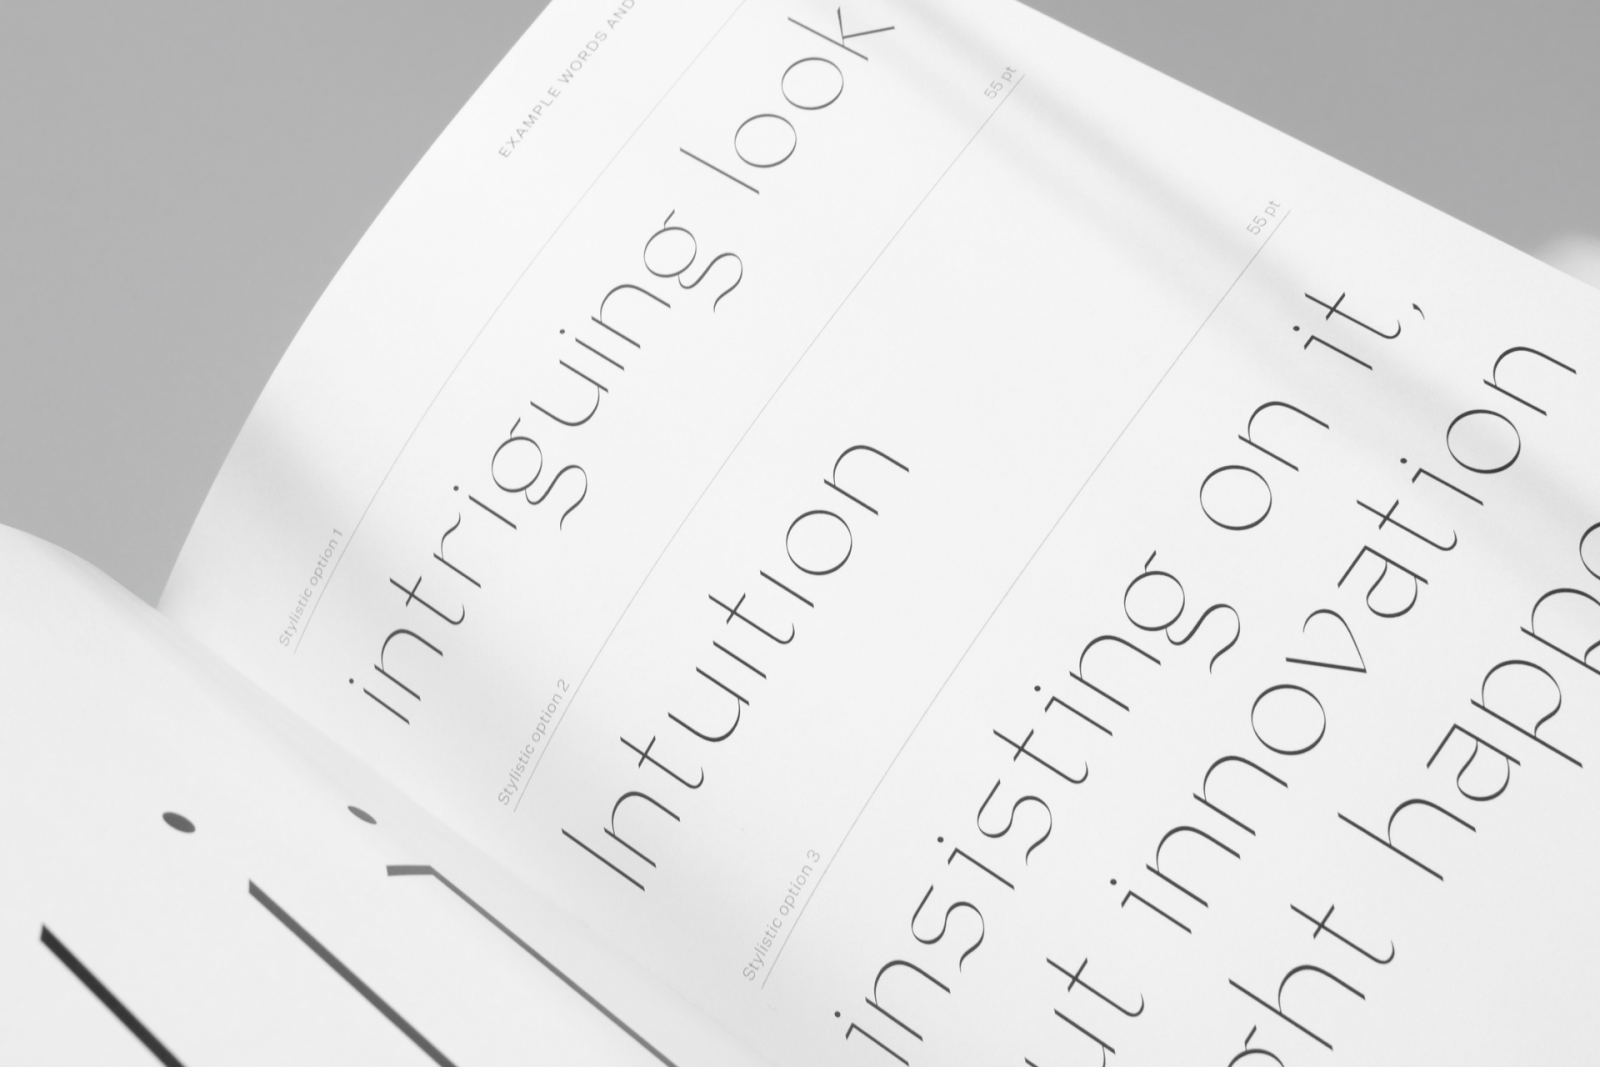 Graceful Vapour Typeface Inspired by Calligraphy by Anna Takács